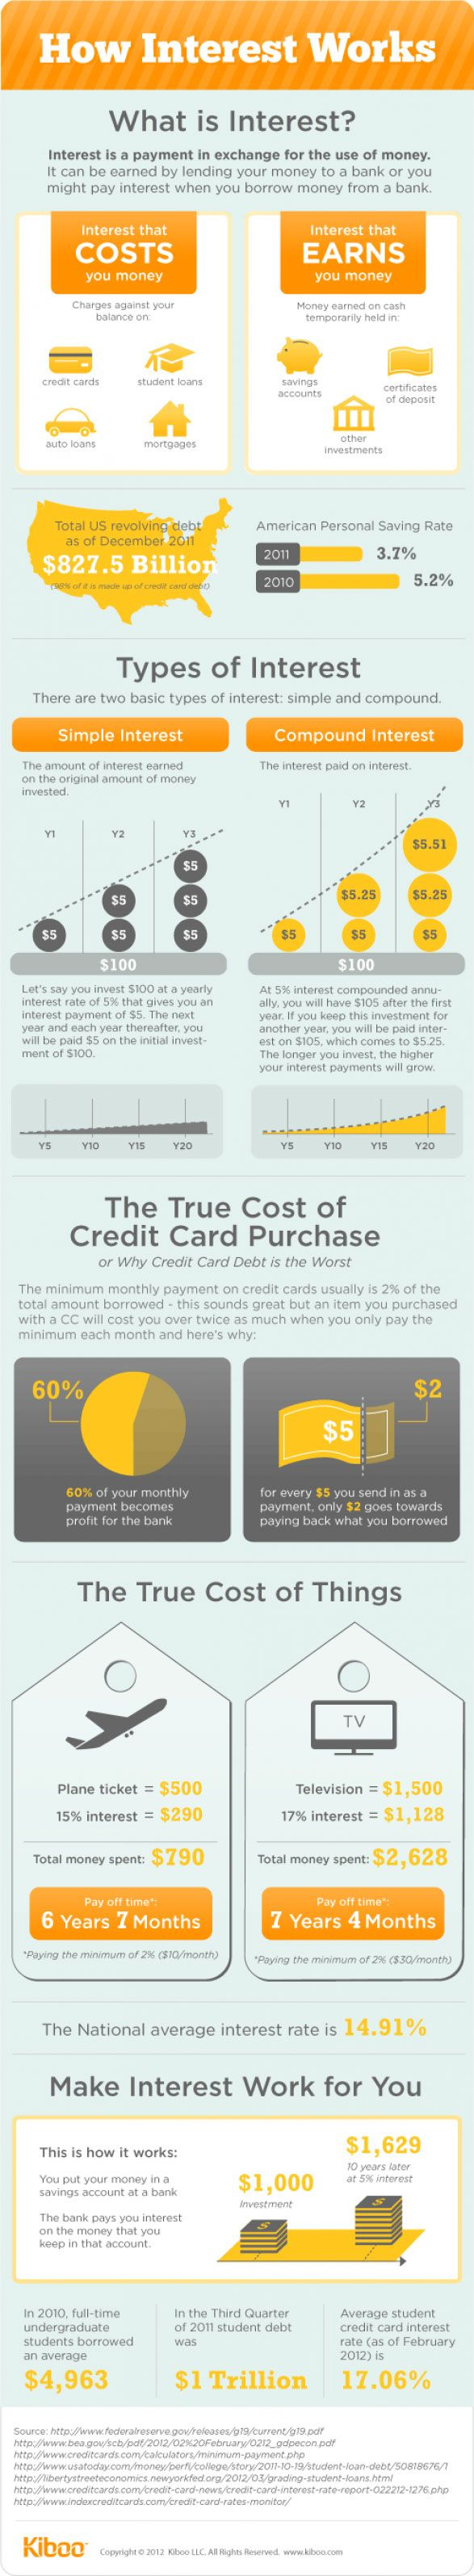 The TRUE COST of credit cards!!! That $1500 TV really cost you $2600!! If you didn't have credit cards.. You could of bought the $2600 TV!! Think about it!!! How-Interest-Rates-Work-infographic